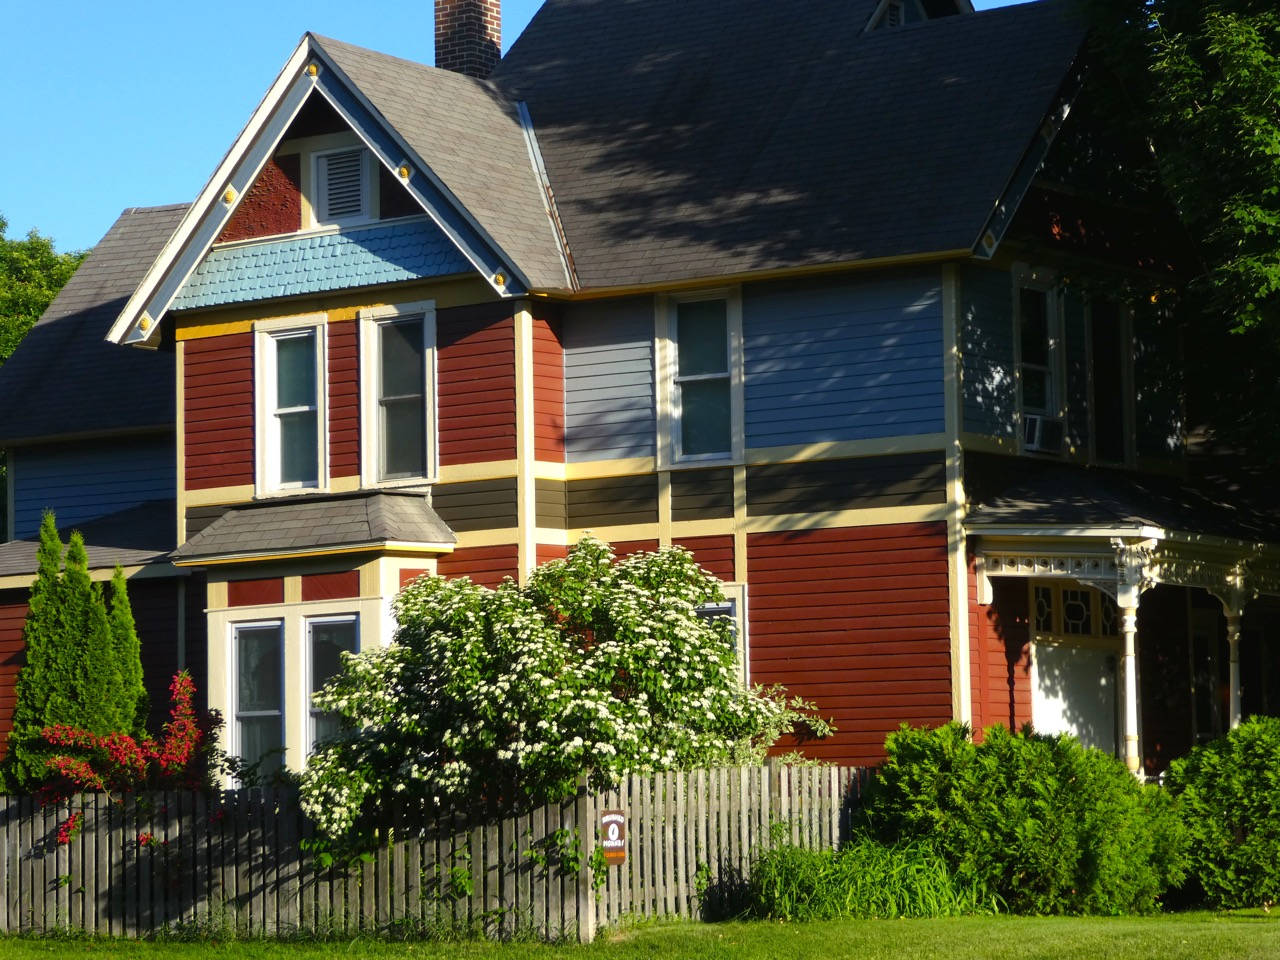 A multicolored home with elaborate siding in the Logan Park neighborhood